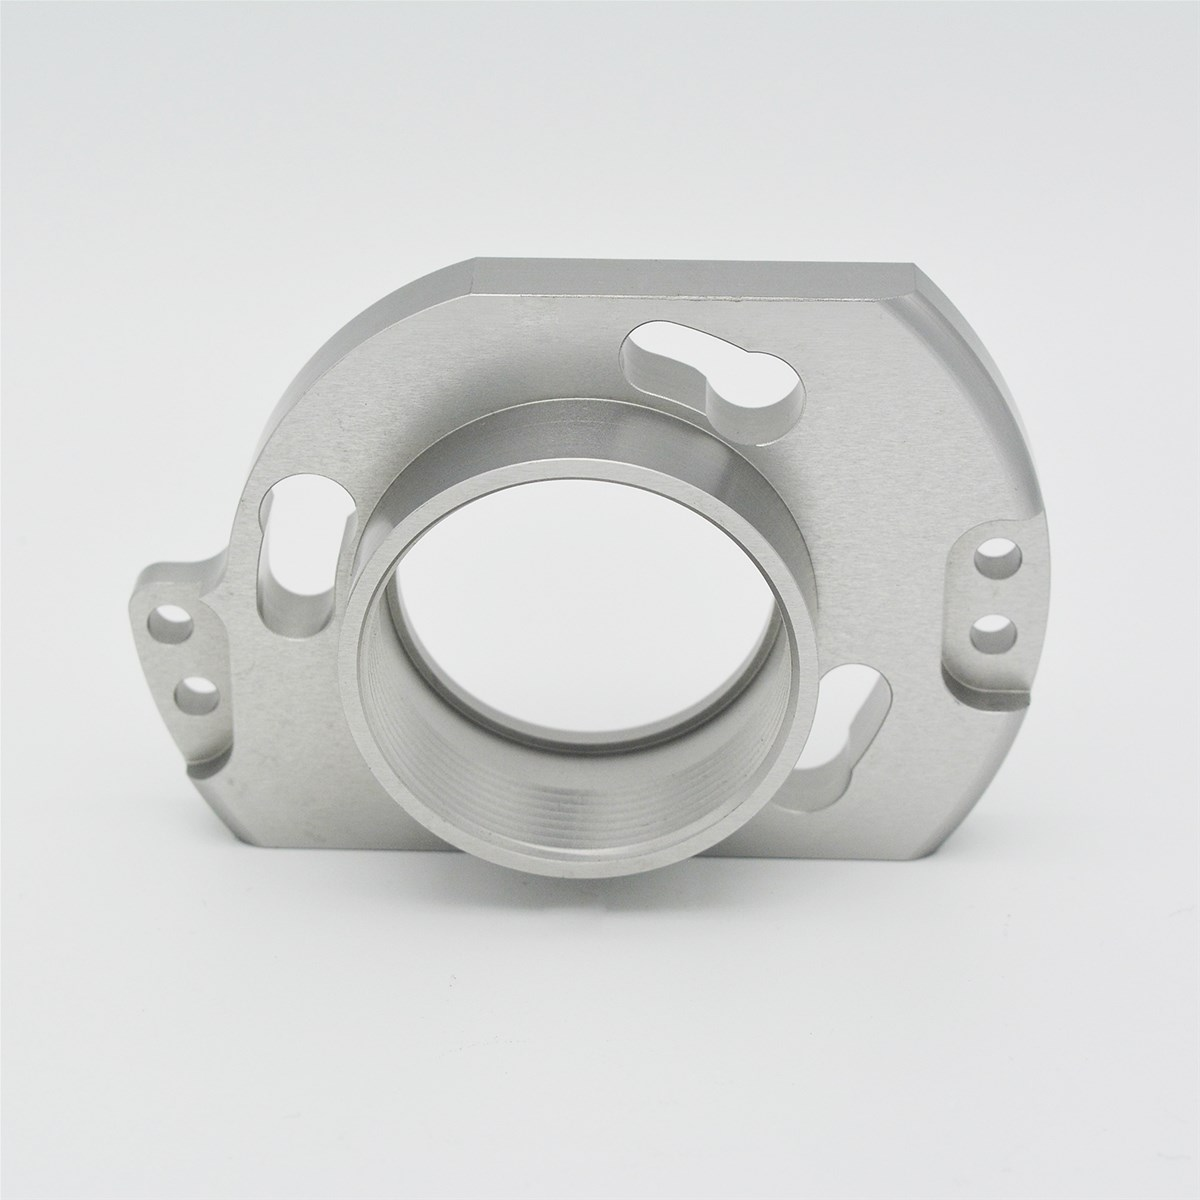 precision milling parts milling components milled parts precision machined